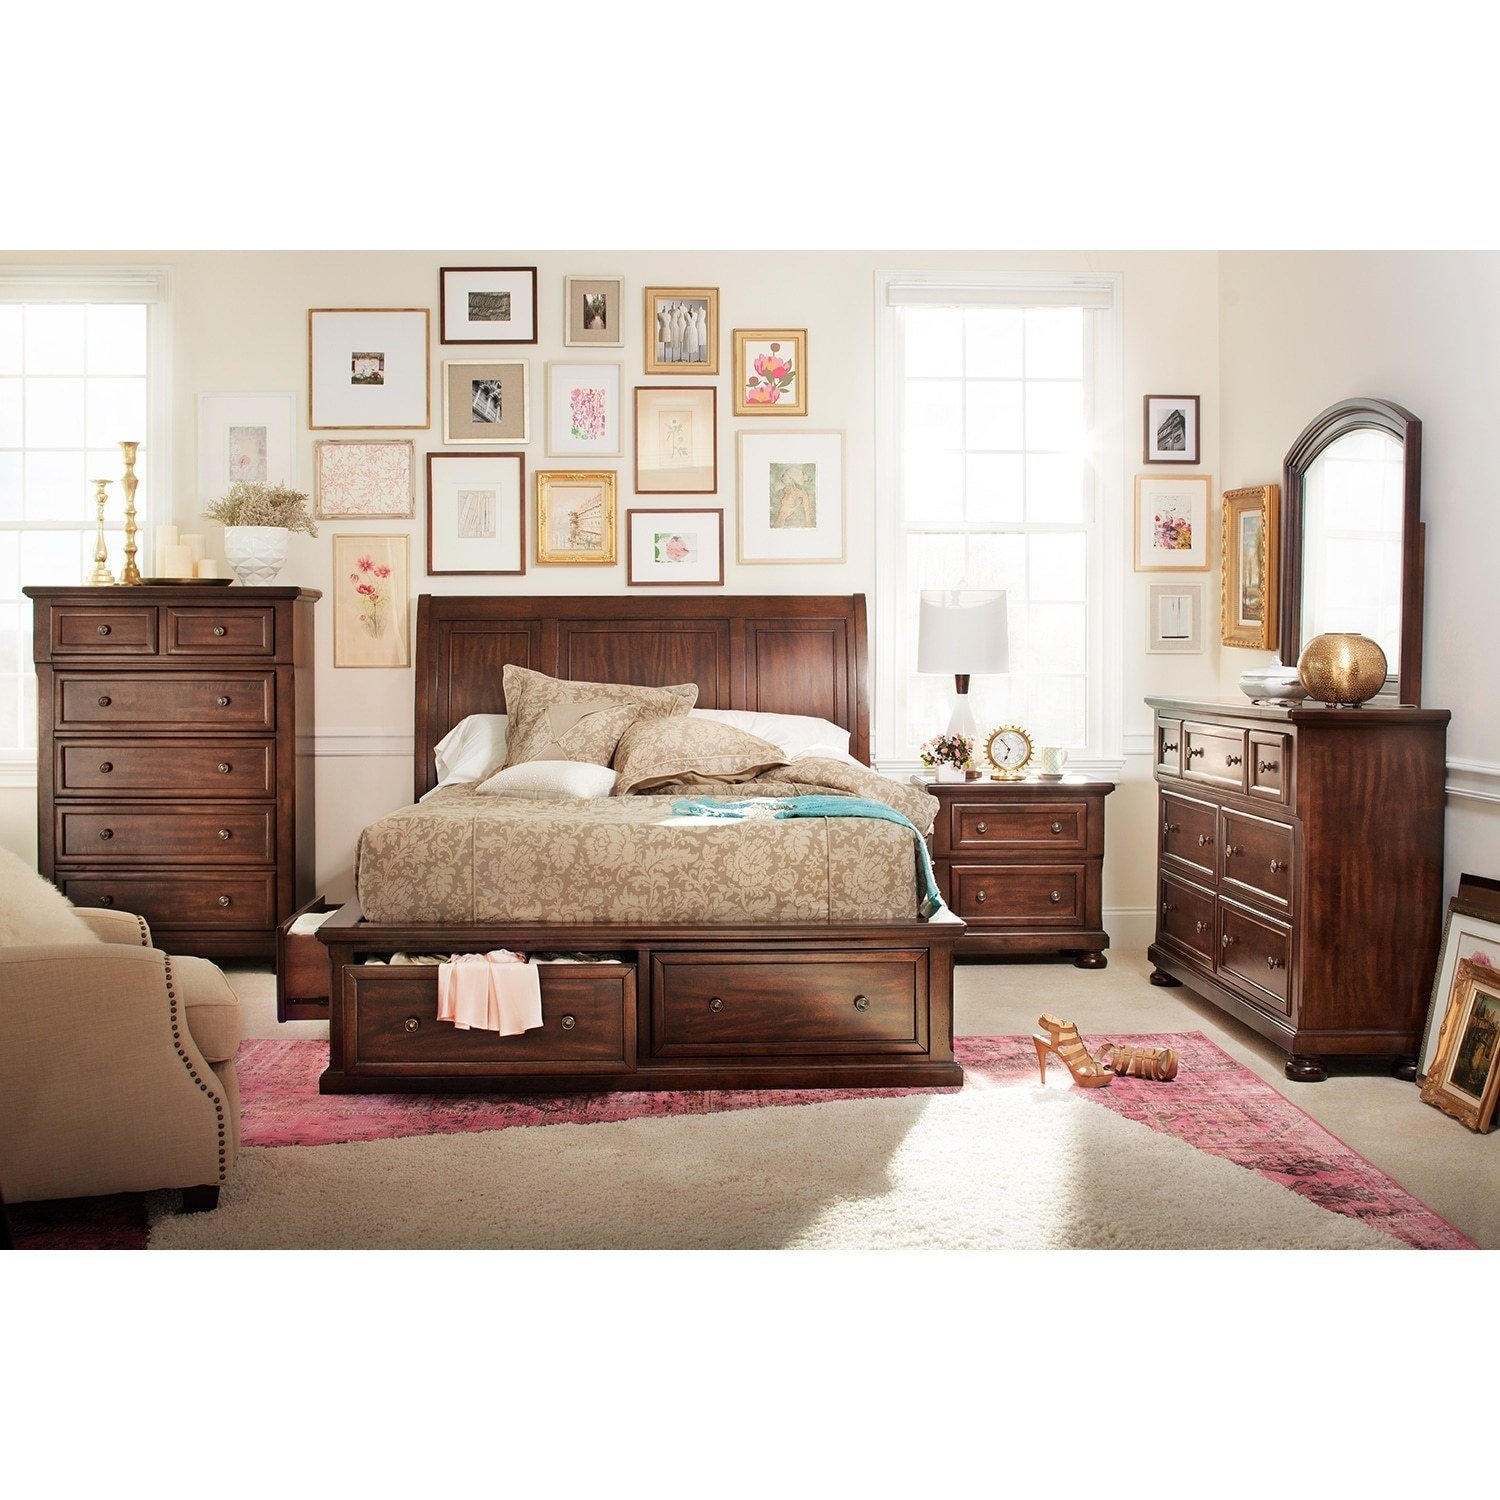 Best Hanover 7 Piece Queen Storage Bedroom Set Cherry Value With Pictures